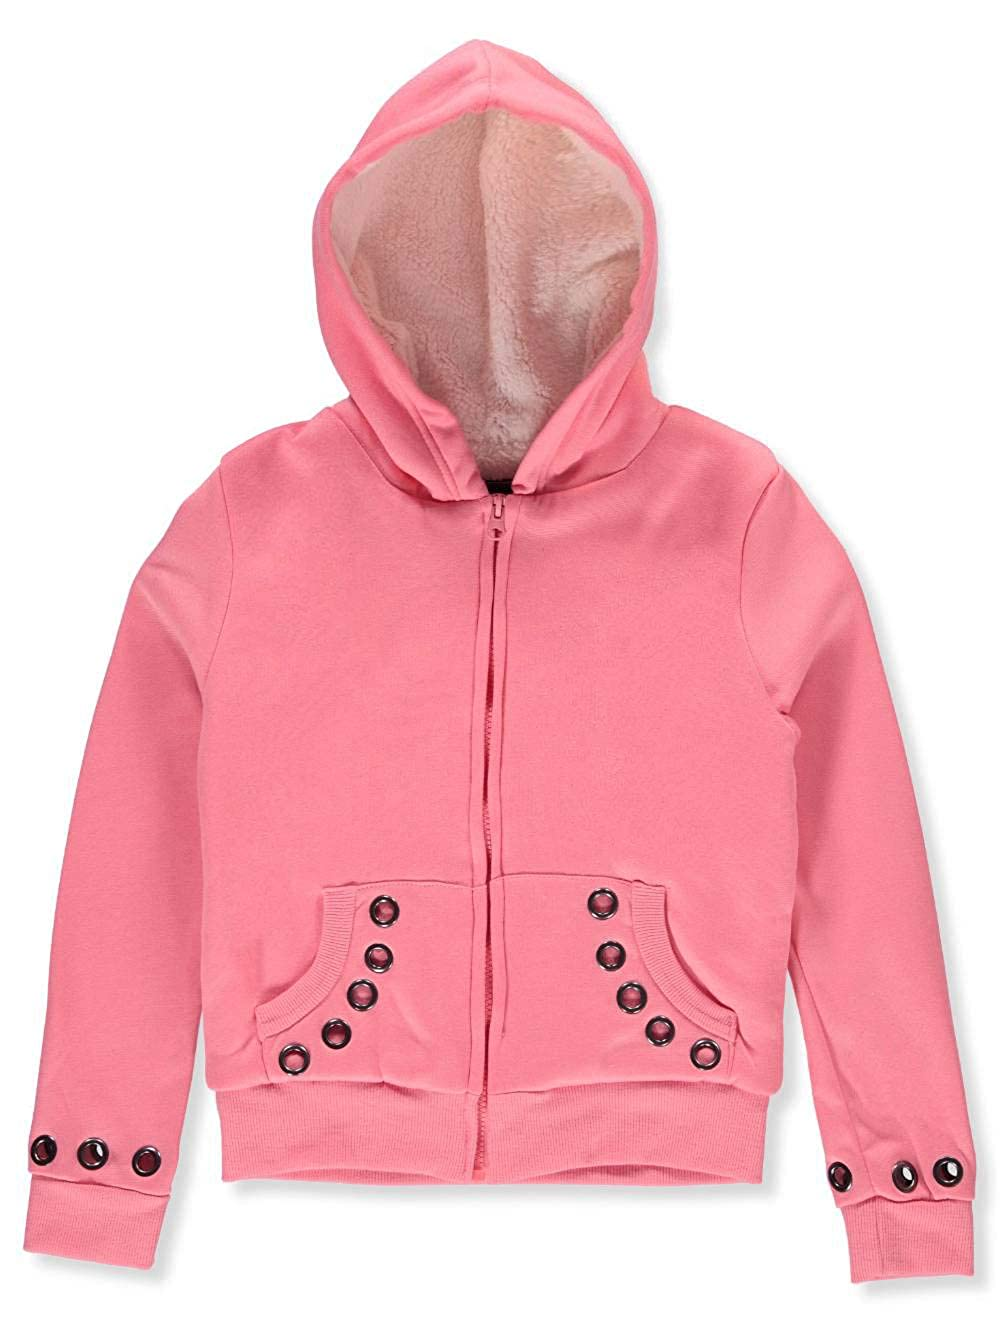 Dream Star Girls' Hoodie